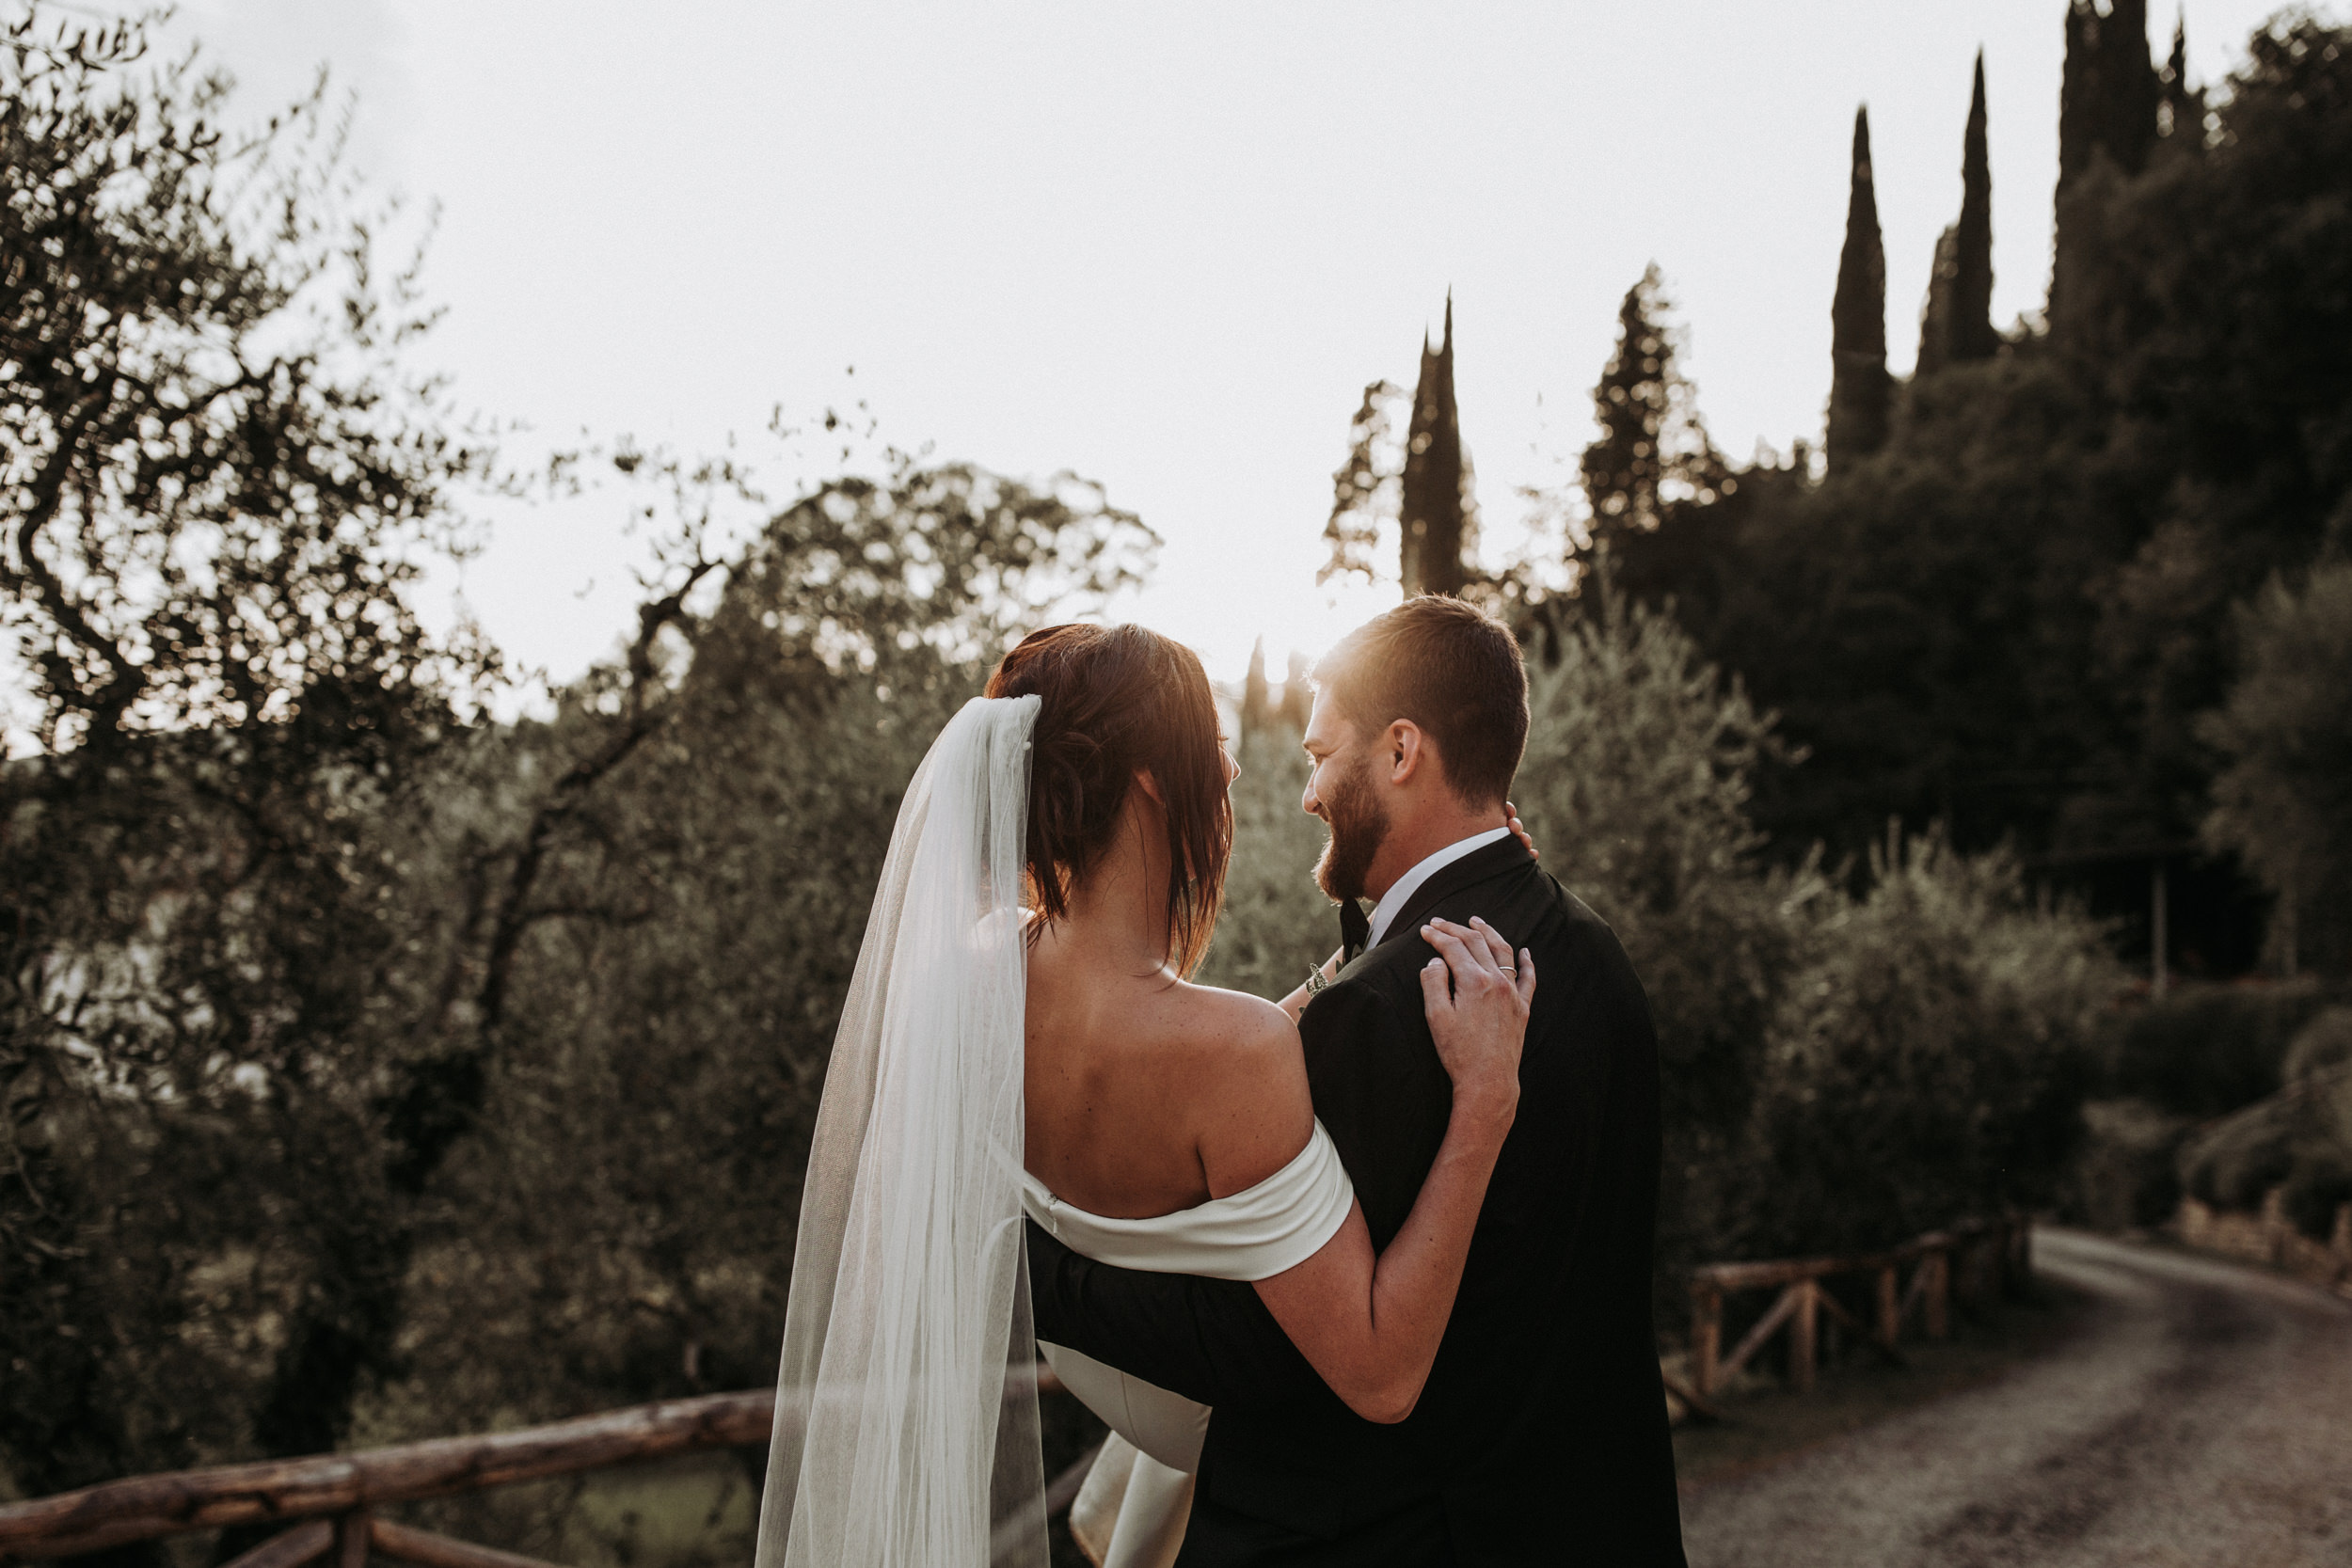 dm_photography_KW_Tuscanyweddingday_367